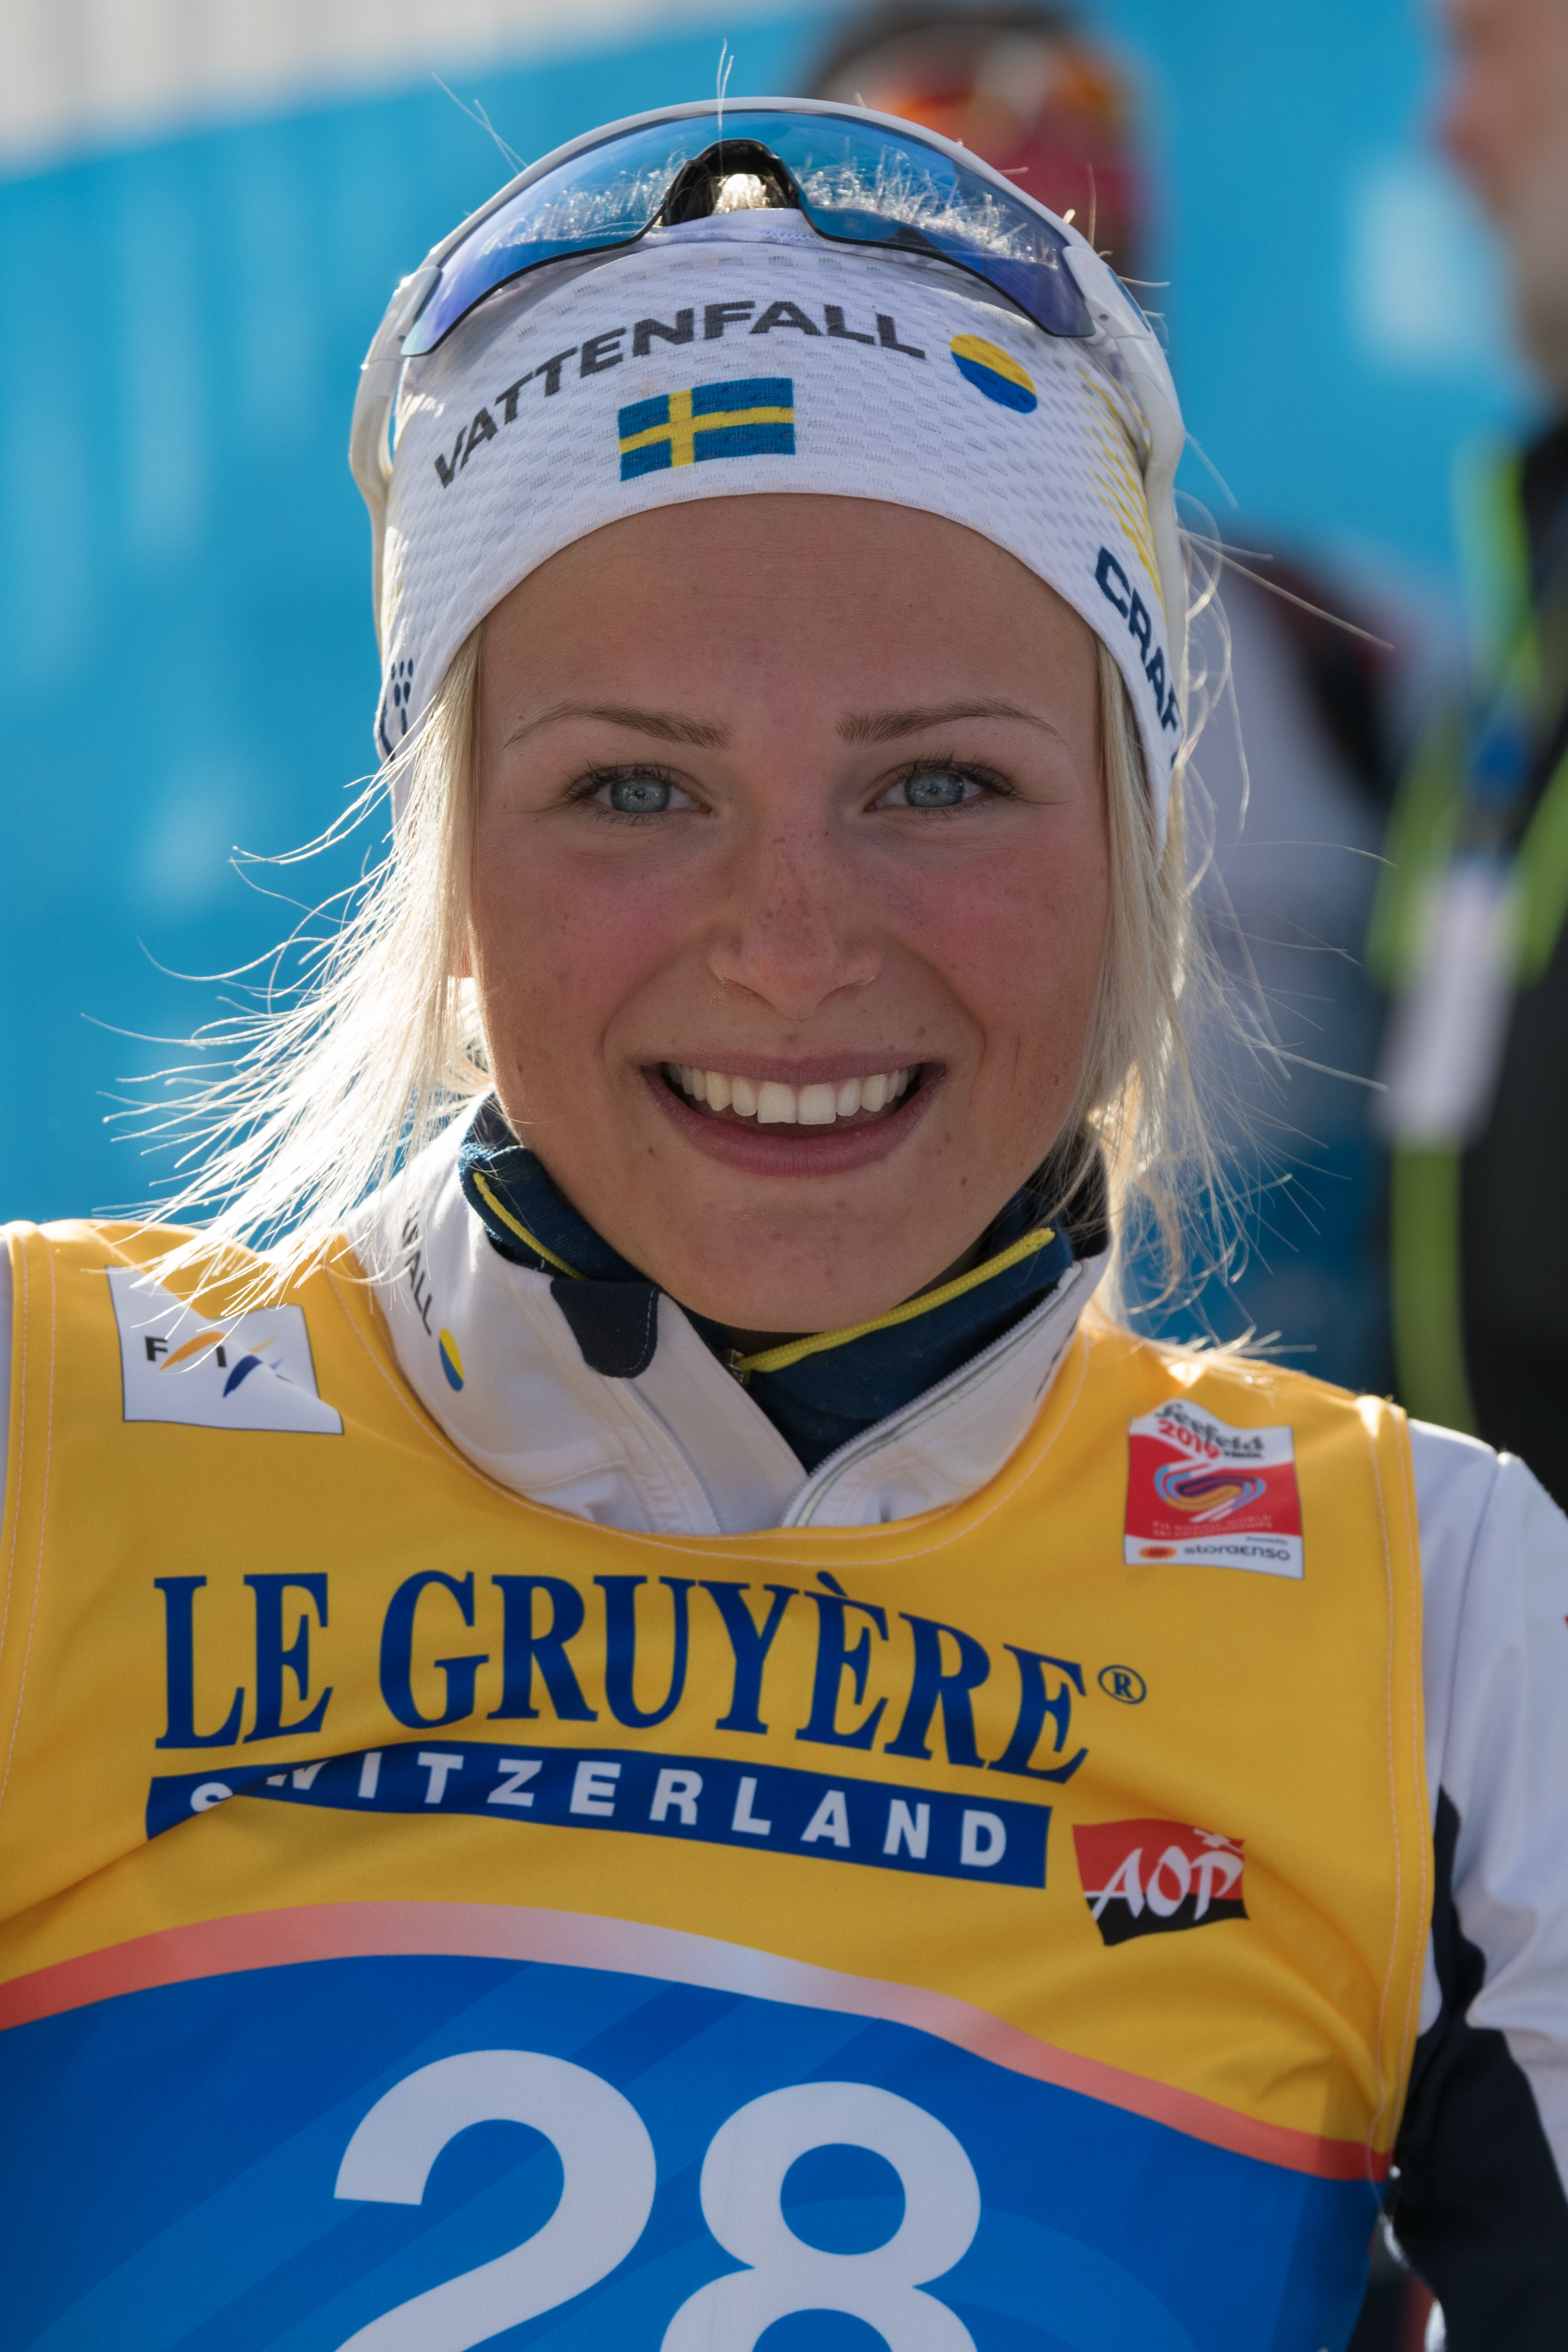 pics Yelena Valbe 7 Olympic medals